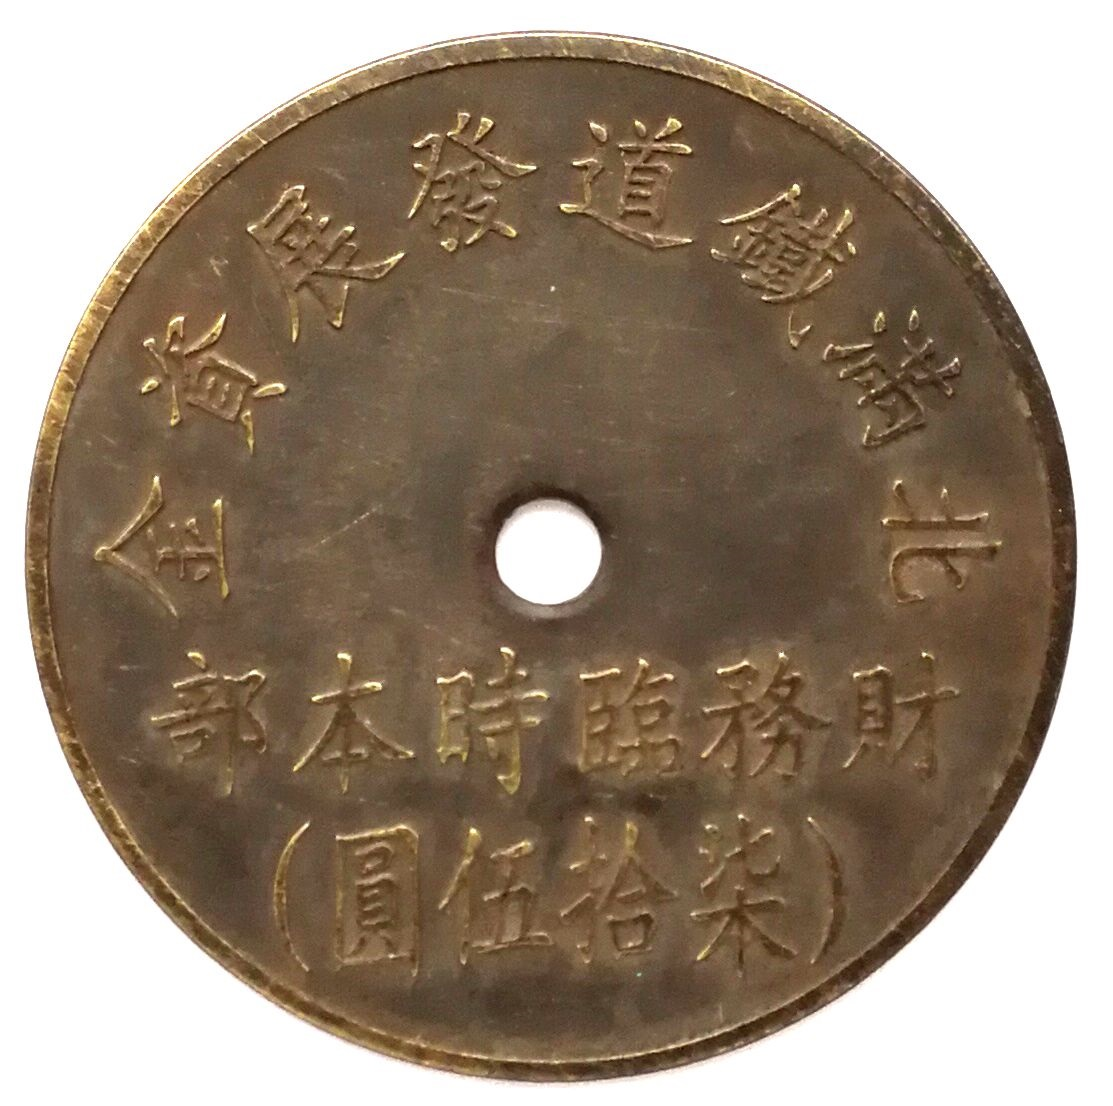 BT476, Army Line Railway Fund of Manchukuo, Token Bond, 10 Yen 1944